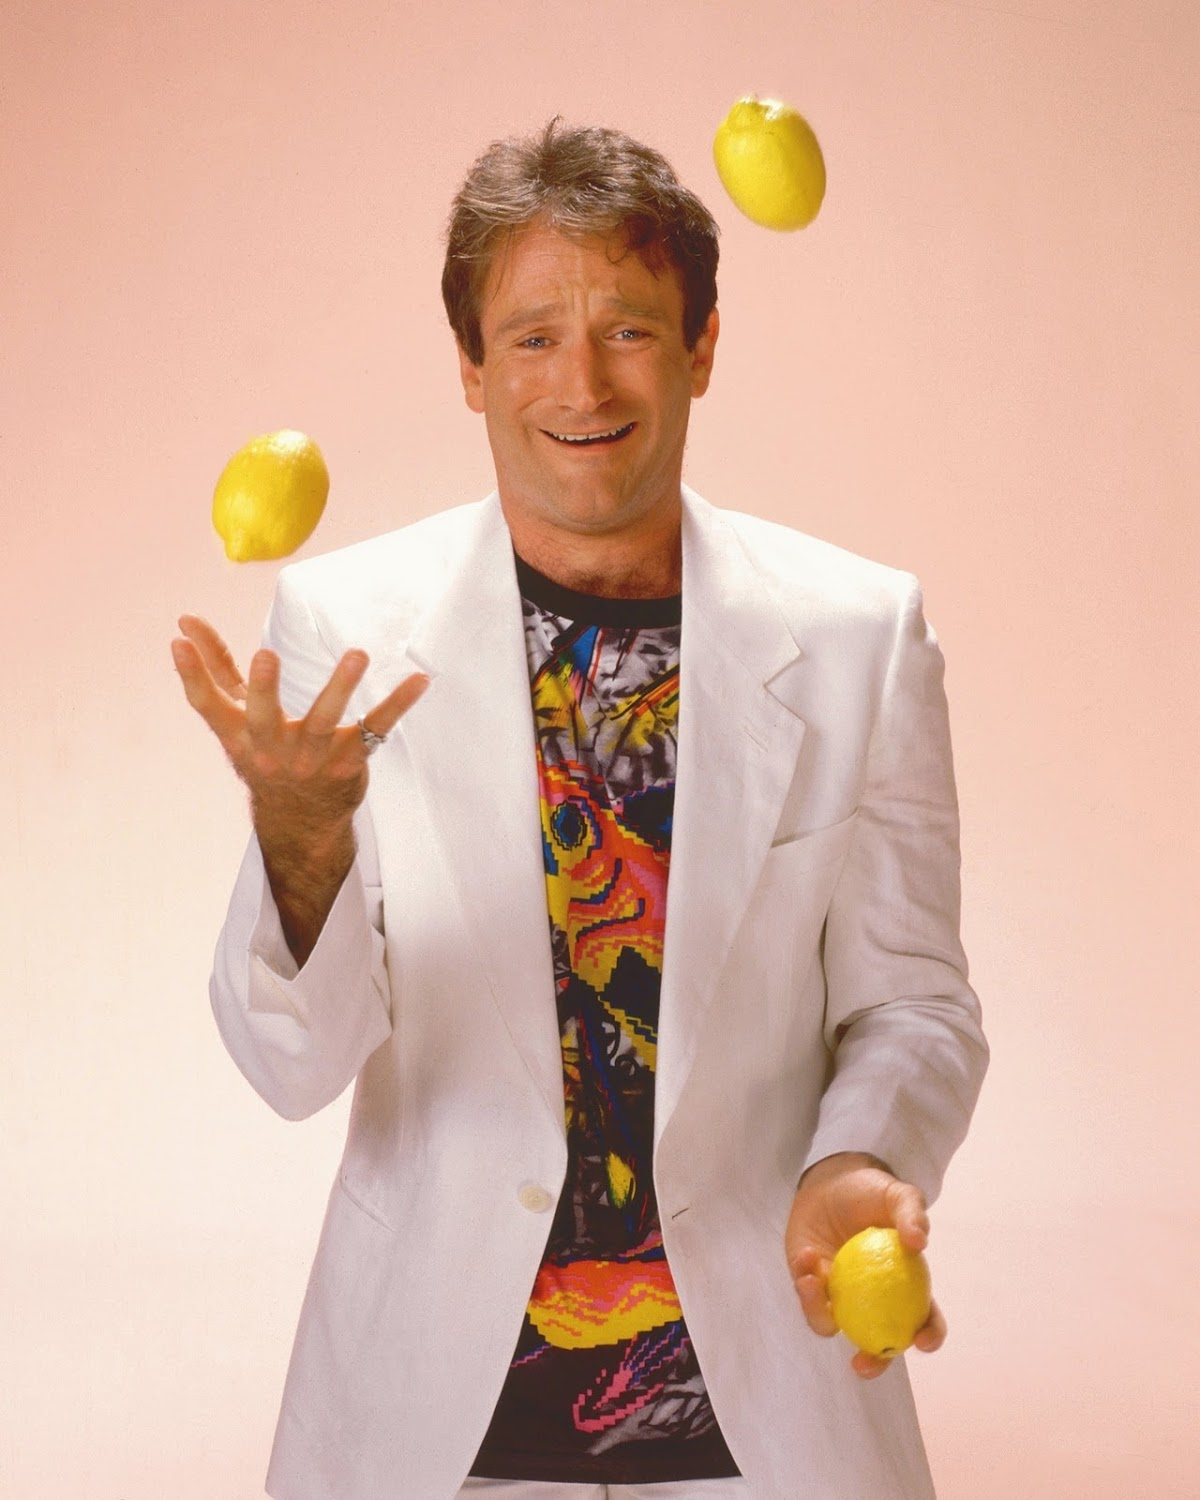 http://2.bp.blogspot.com/-H-U3bTvo_68/TrG6guCqS7I/AAAAAAAAAfE/mPnvOwr5Xlg/s0/Robin-Williams-1999-robin-williams-19521952-2048-2560.jpg